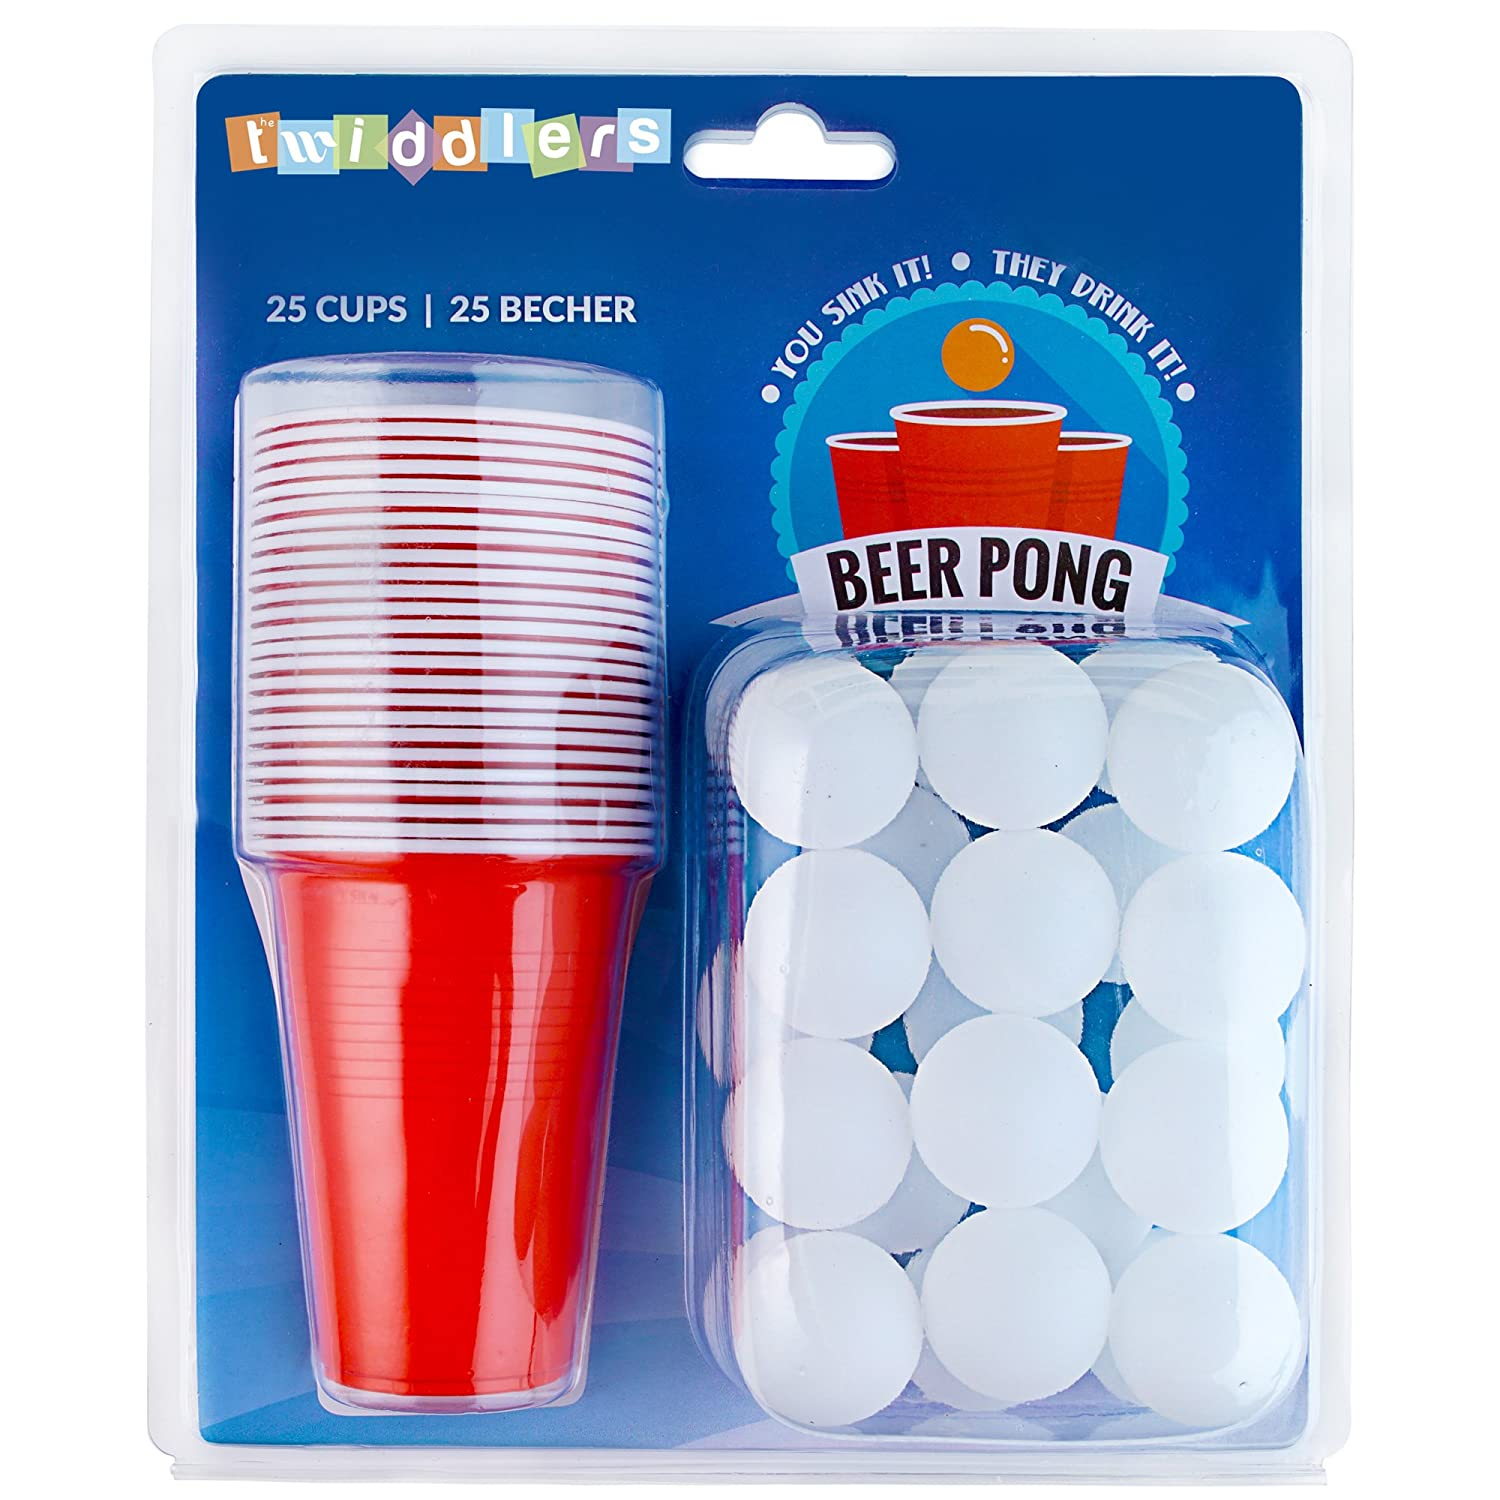 Iconic Red American Beer Pong Set – 25 Cups and 25 Balls – Perfect for Christmas Party Fun and Games The Twiddlers